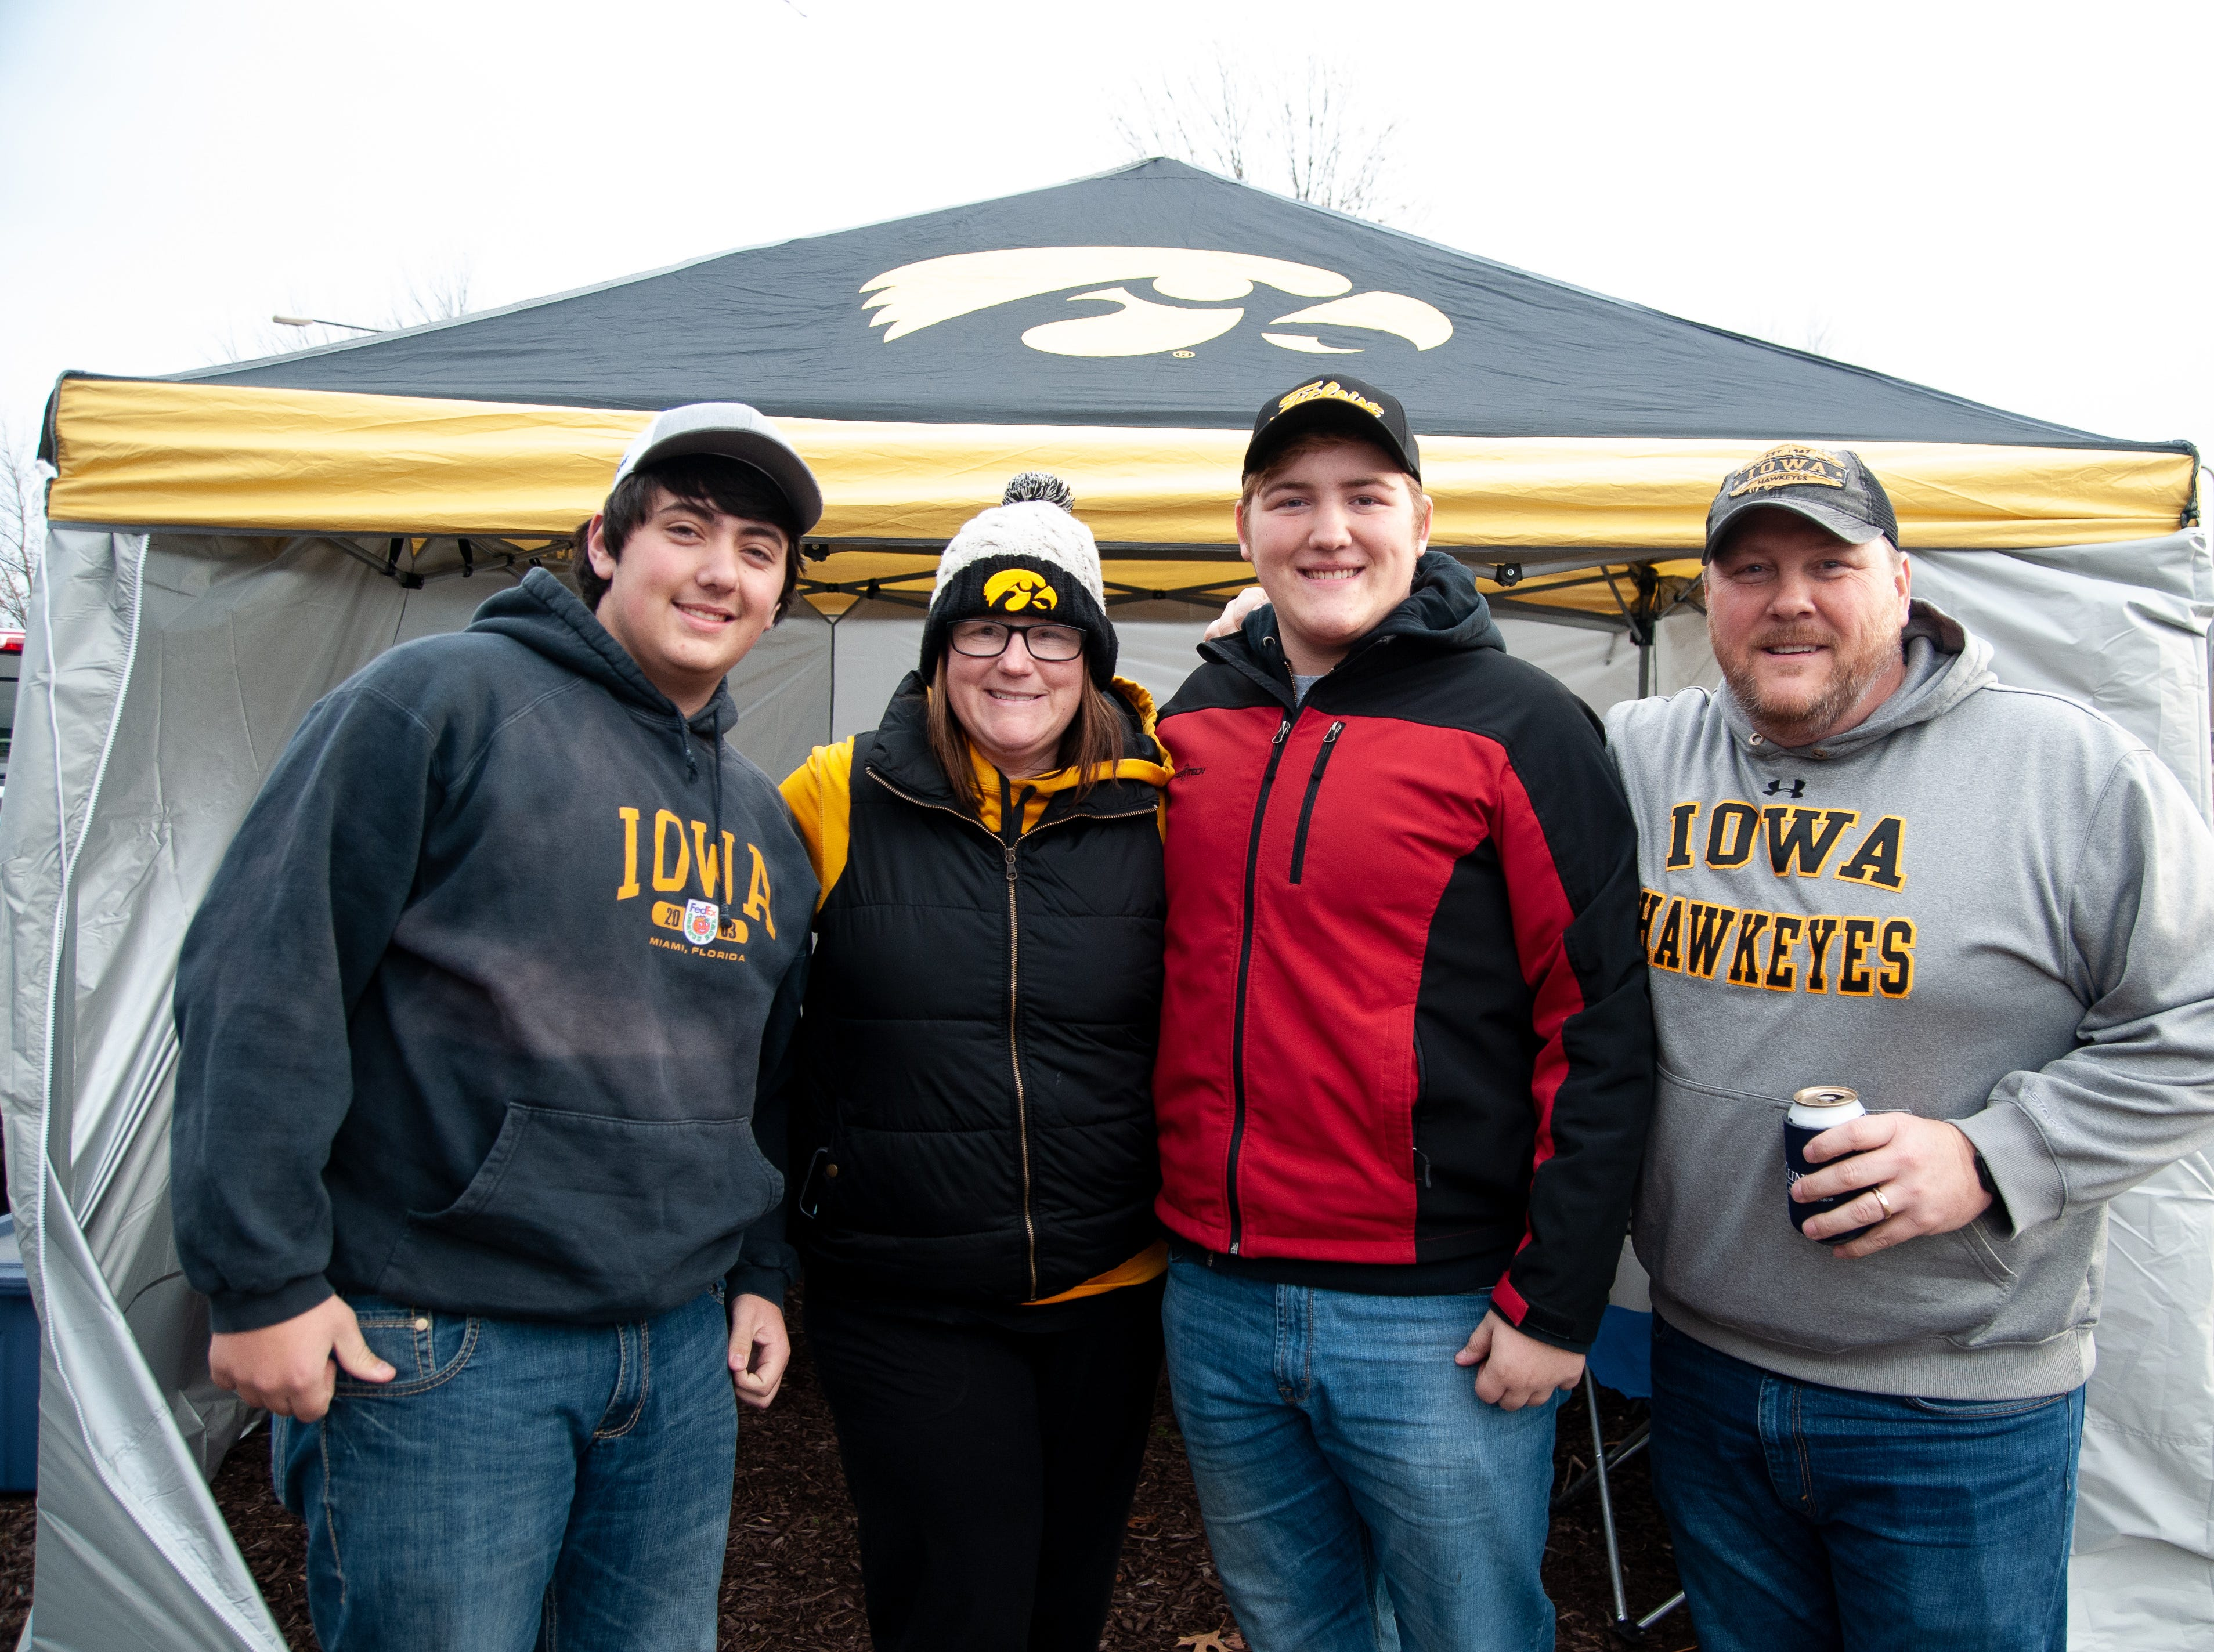 Jacob Engstrom, left, with Mandy, Tyler and Kevin Willey, of Grimes, Friday, Nov. 23, 2018, while tailgating before the Iowa game against Nebraska in Iowa City.